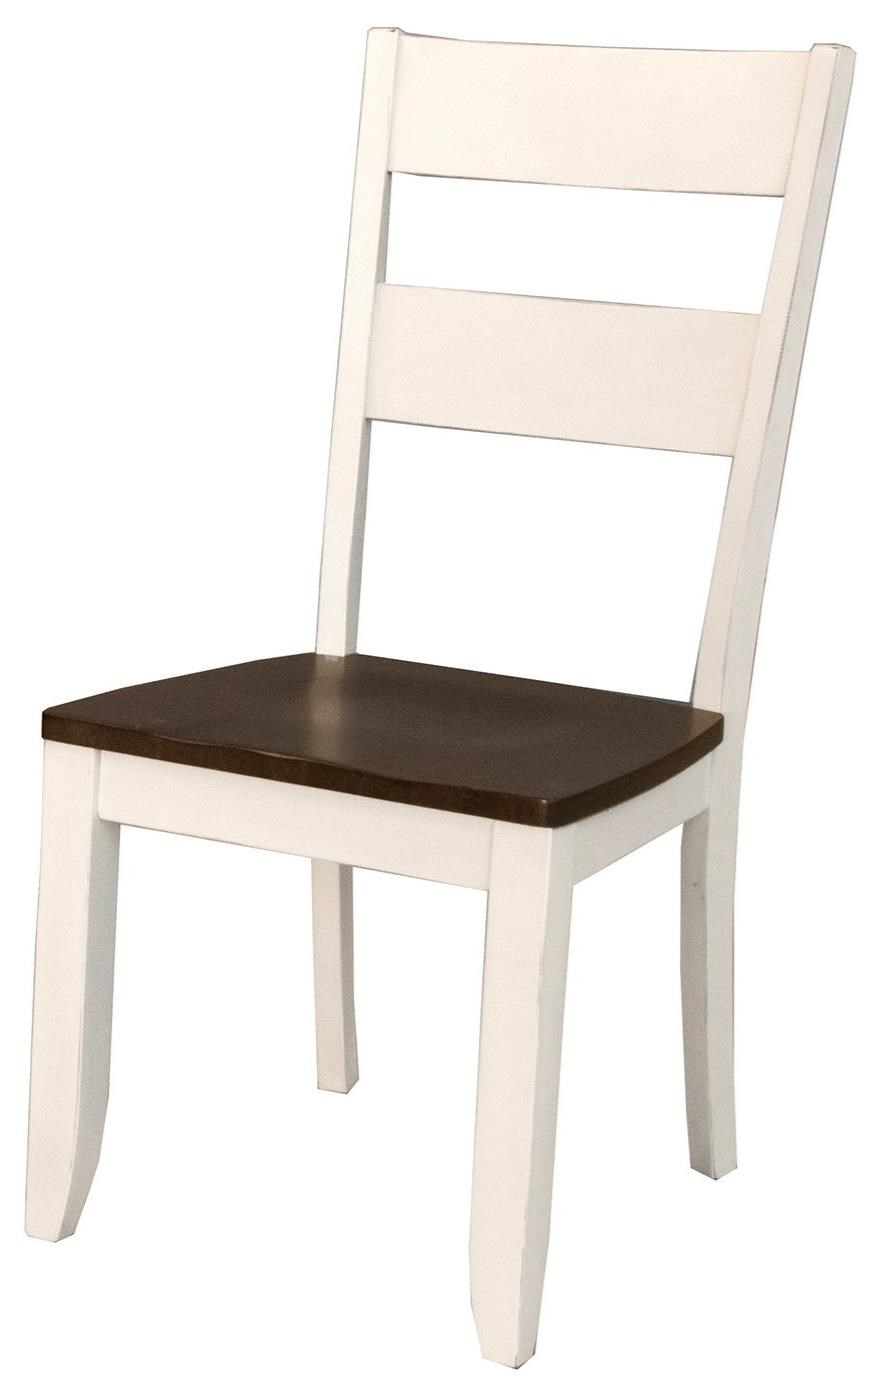 Mariposa Ladderback Side Chair by A-A at Walker's Furniture